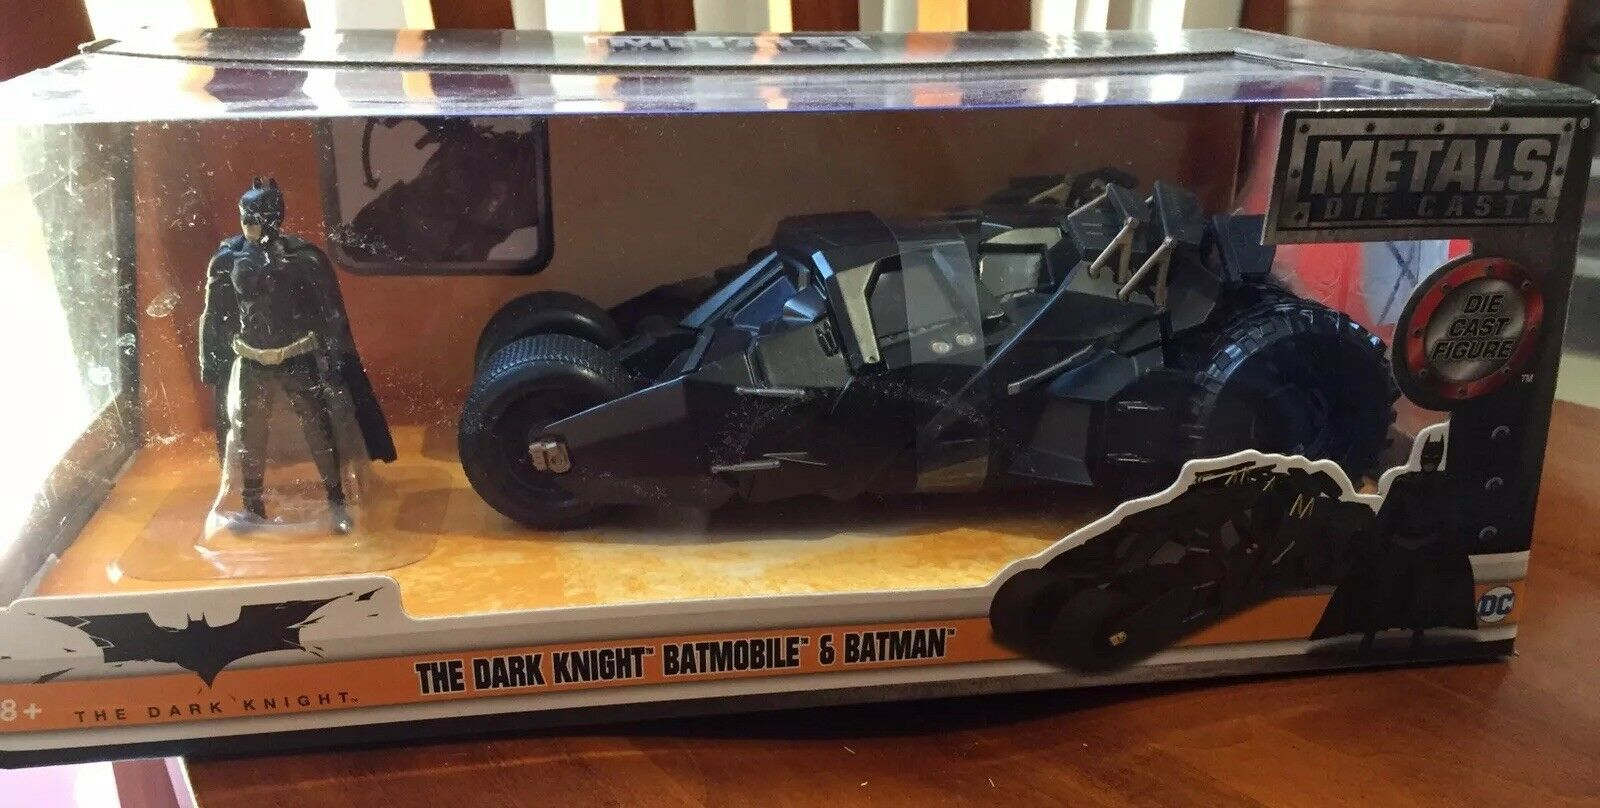 Batman The Dark Knight Knight Knight Batmobile & Batman Metals Die Cast JADA DC Sealed NEW 2c348b